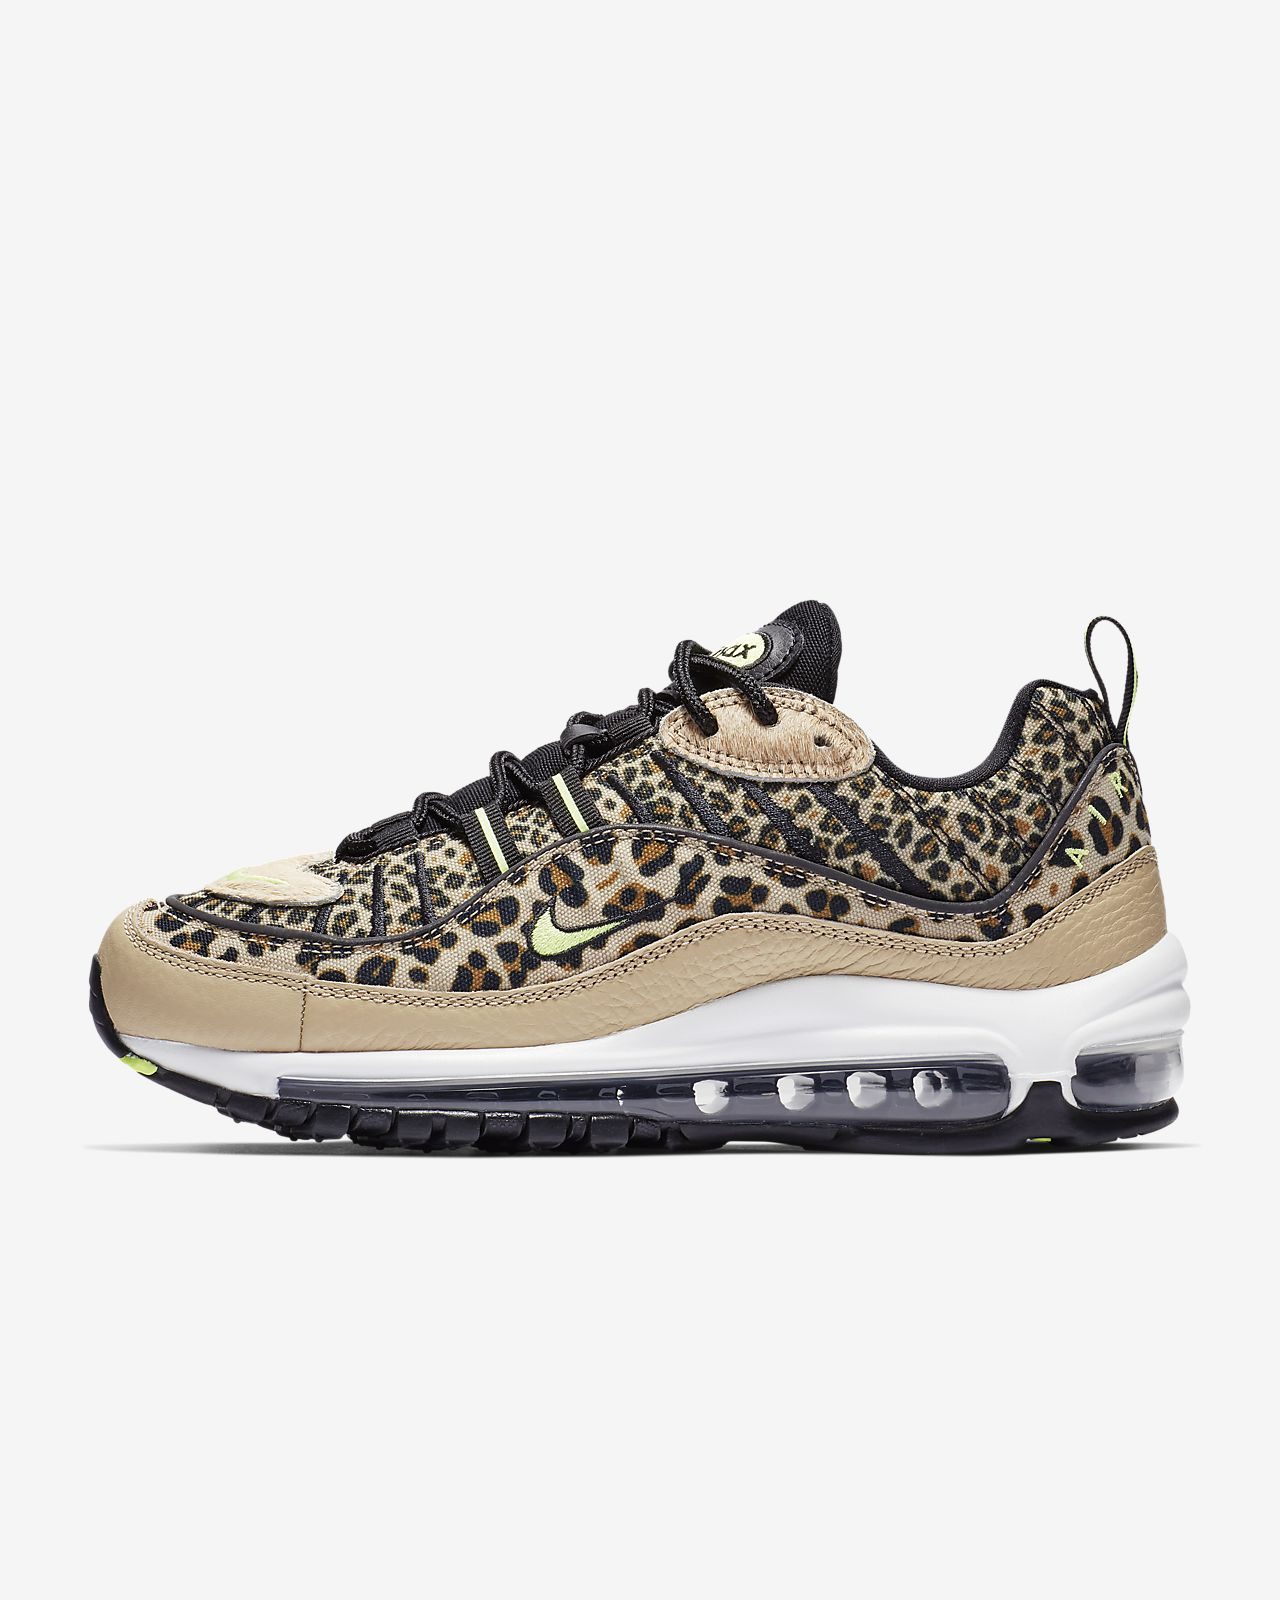 new concept 6d62a bd5a1 ... Nike Air Max 98 Premium Animal Women s Shoe